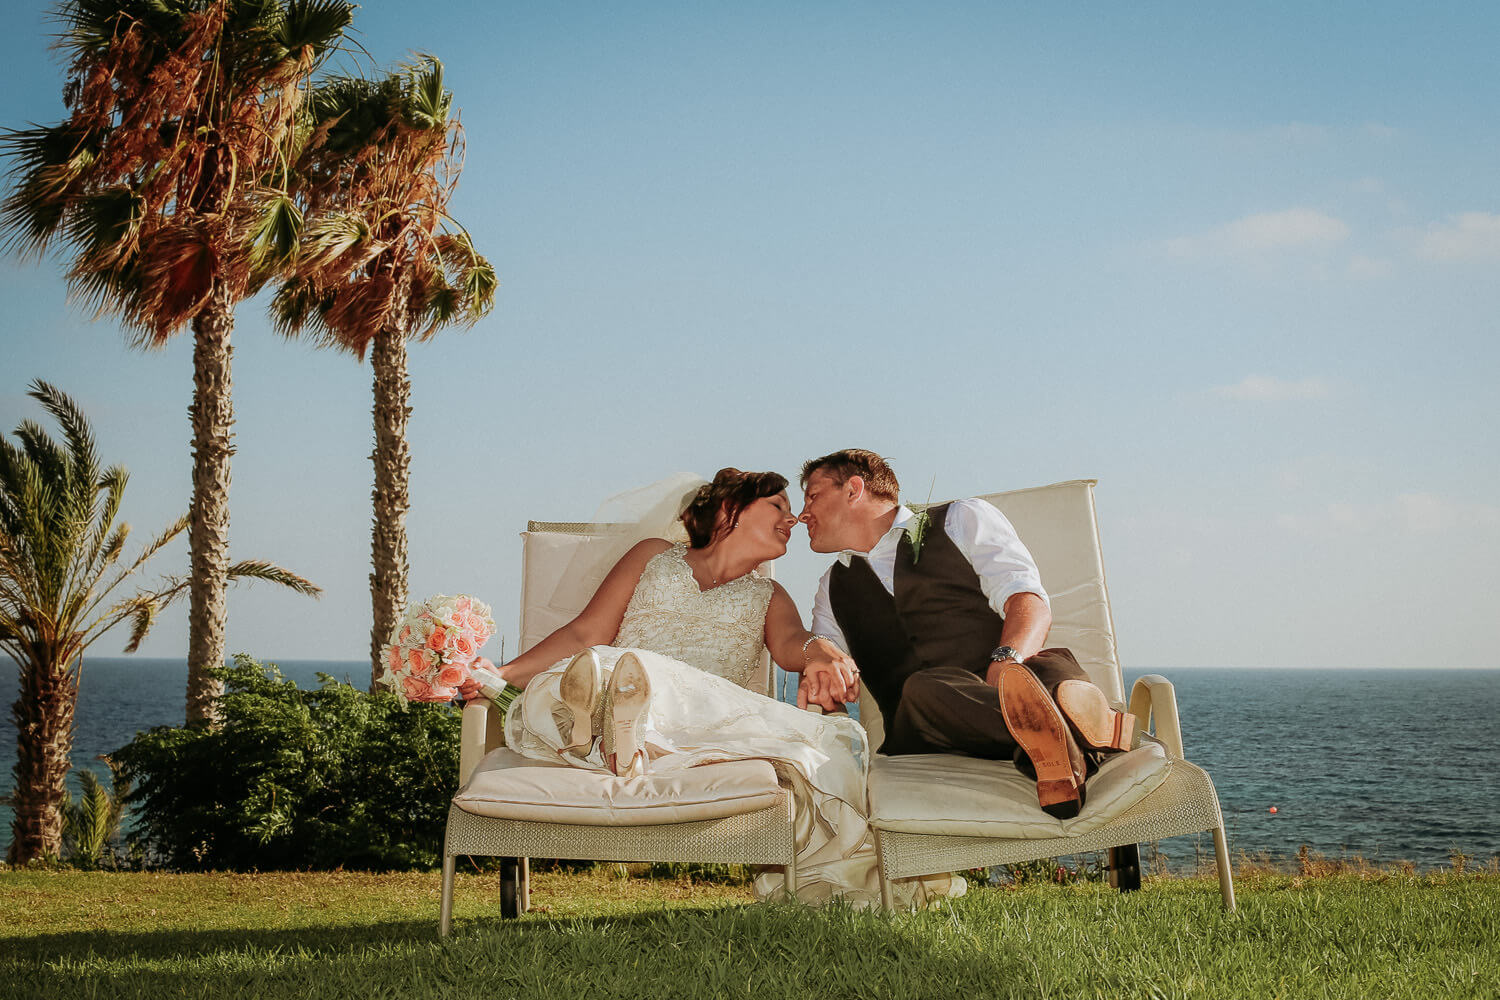 Destination wedding photography Paphos Cyprus, Bride and groom kissing sat of sun beds with palm trees and blue sky